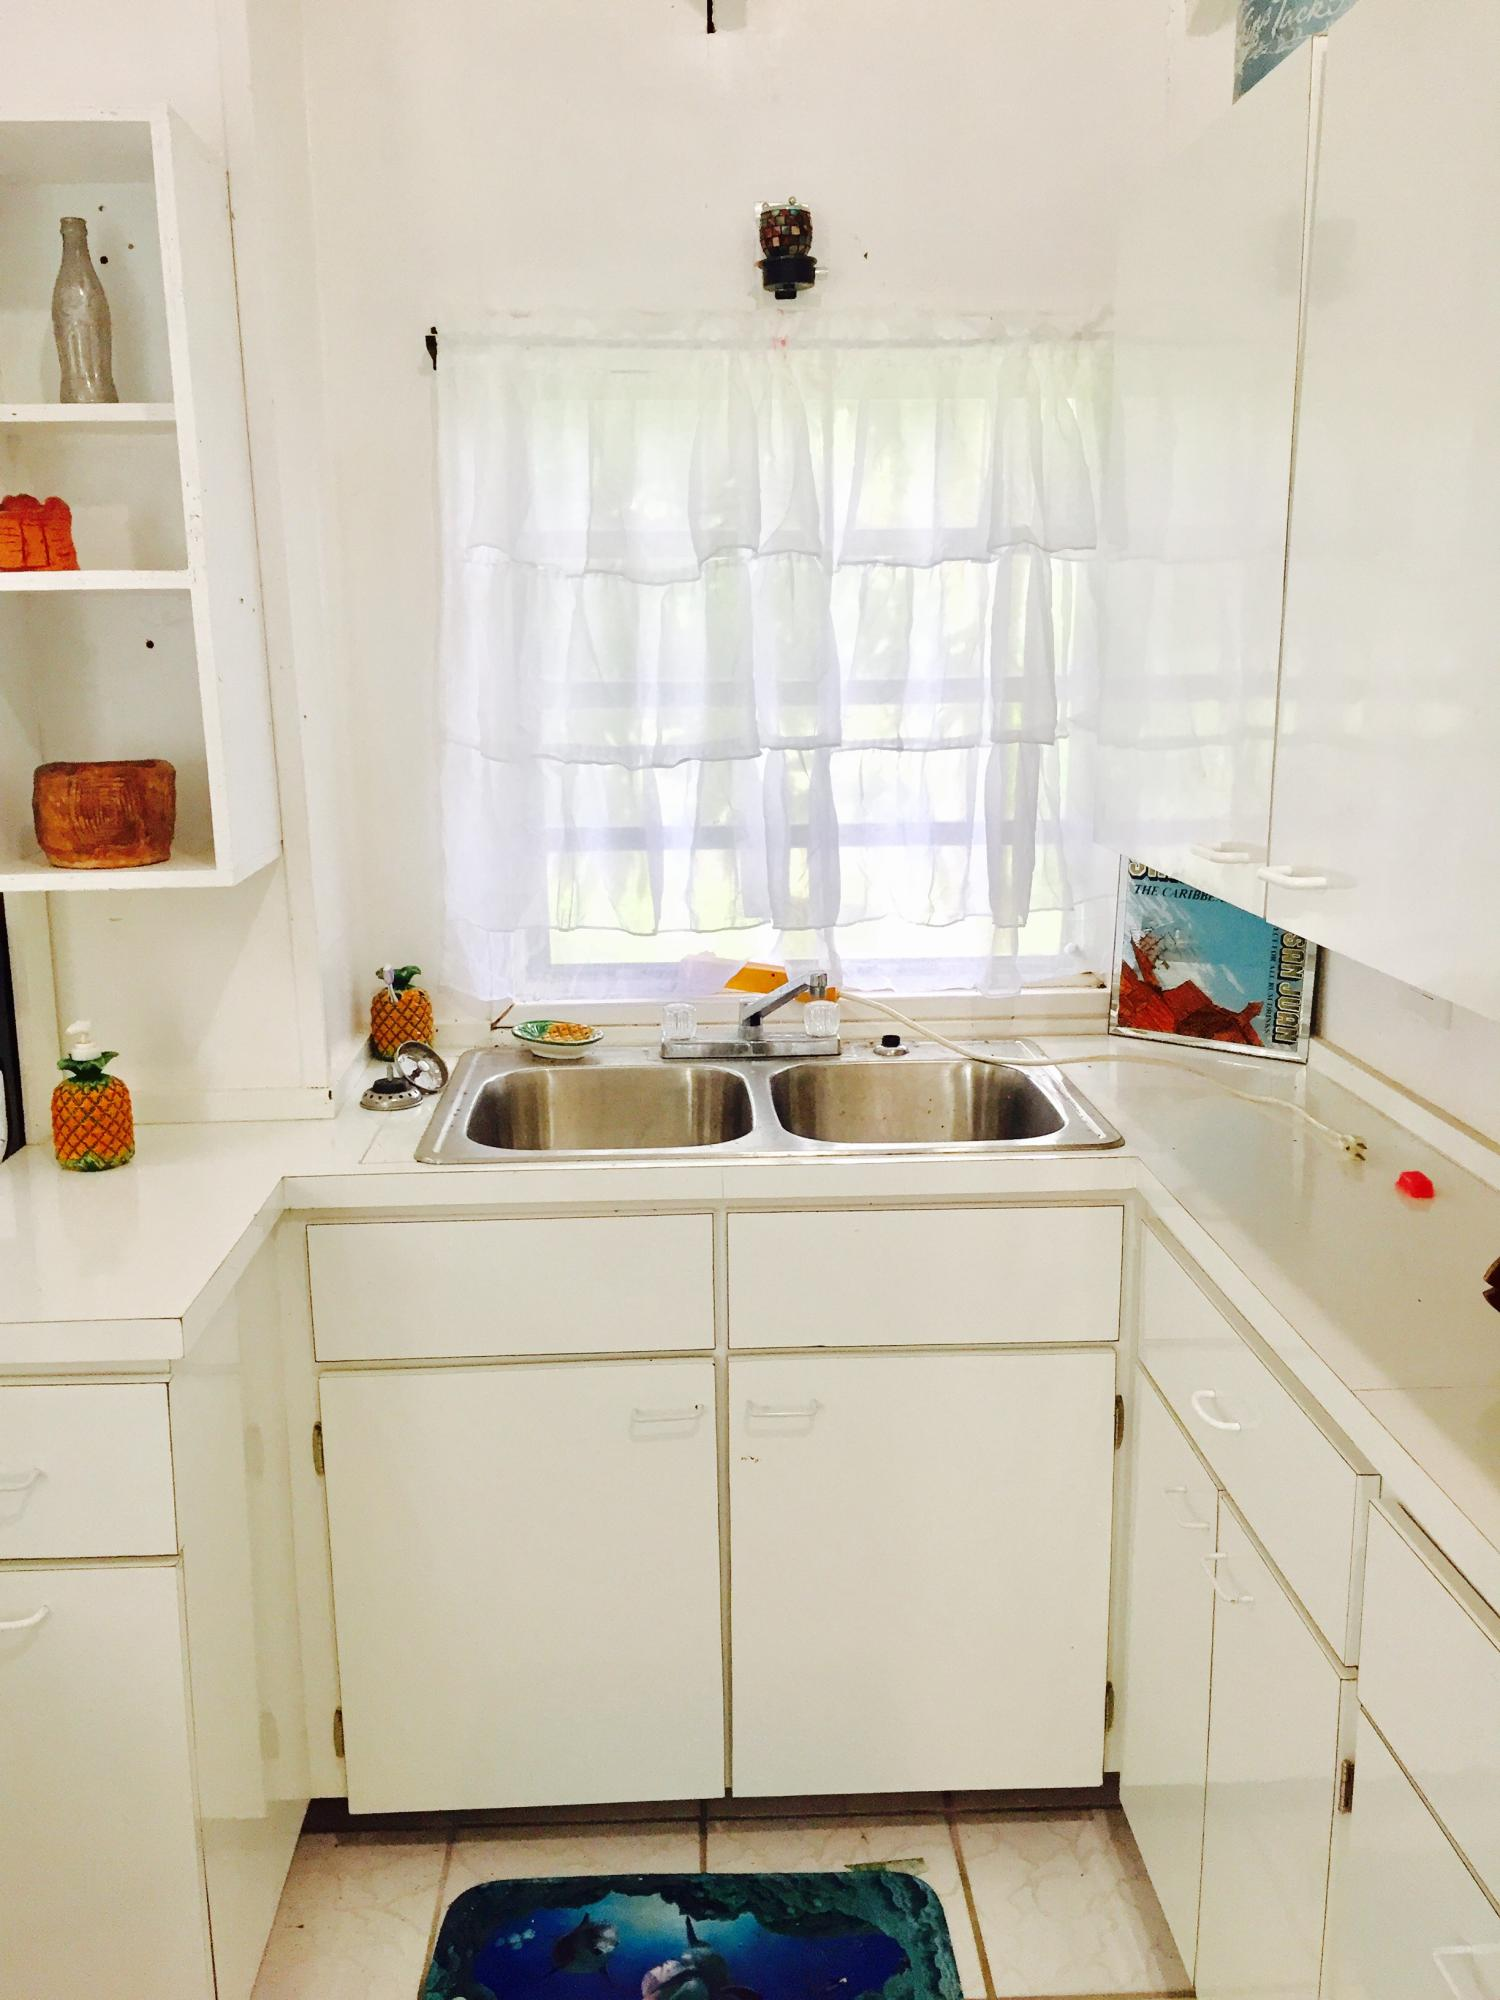 2nd kitchen sink